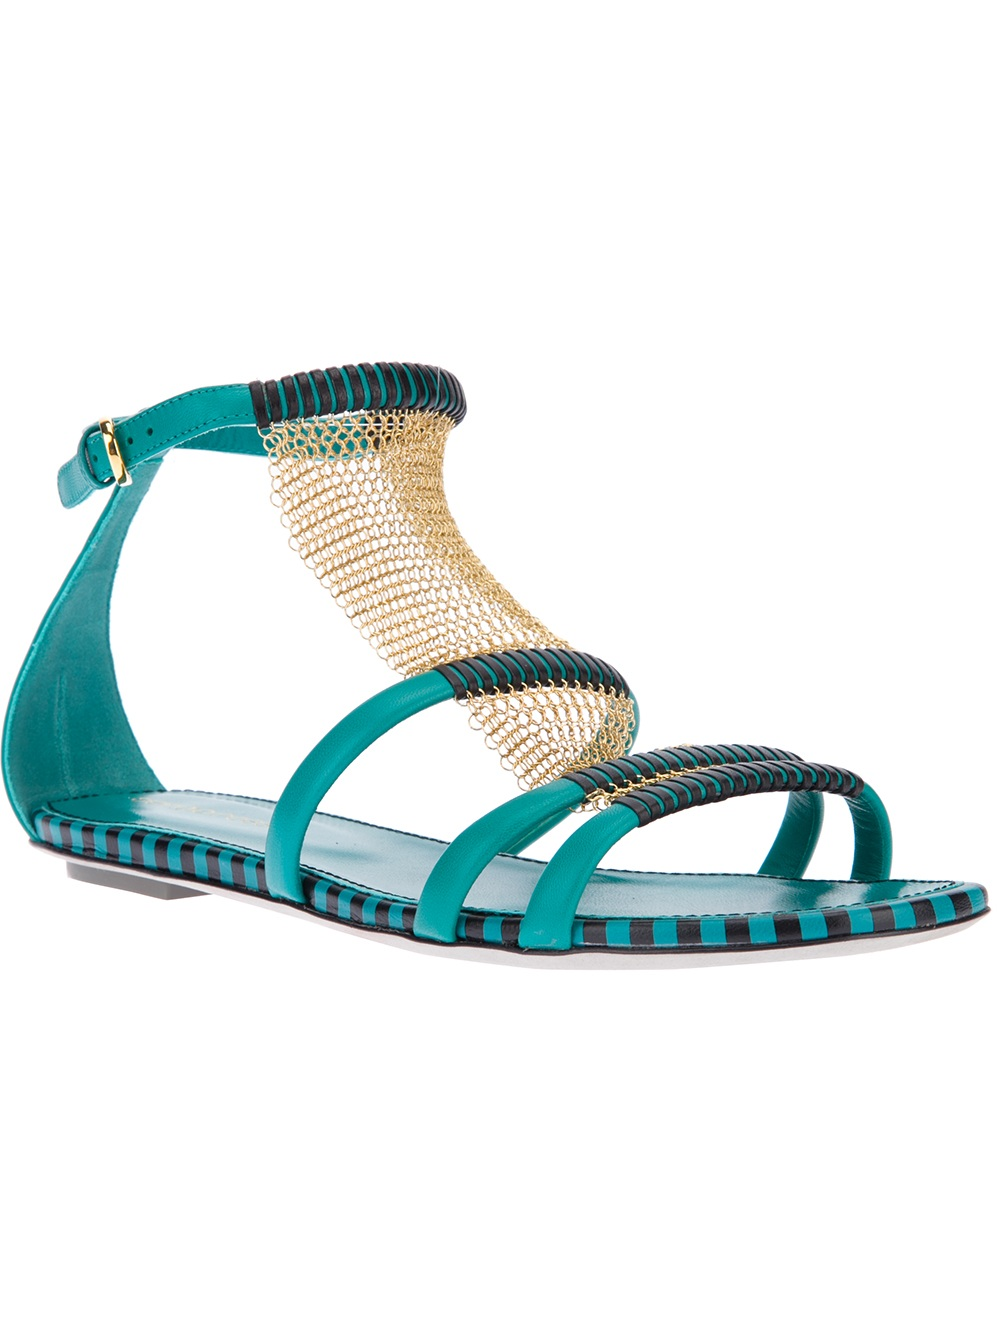 Sergio Rossi Strappy Flat Sandal In Green Turquoise Lyst